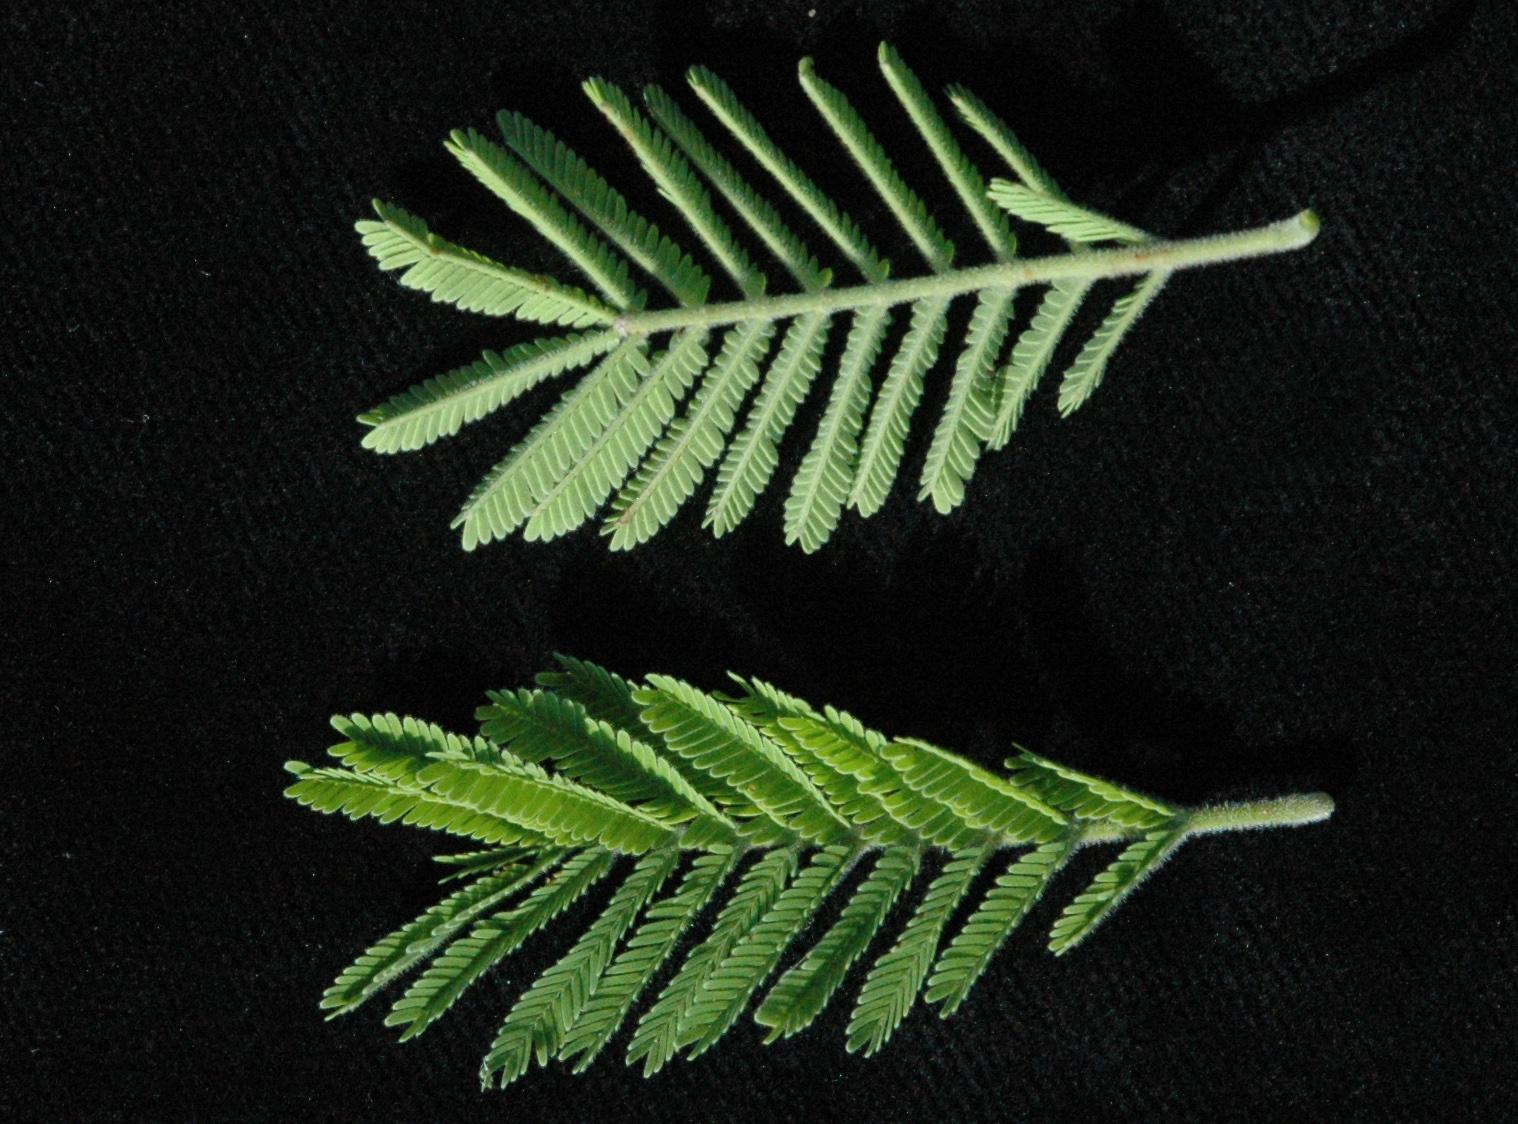 Acacia Mill Plants Of The World Online Kew Science